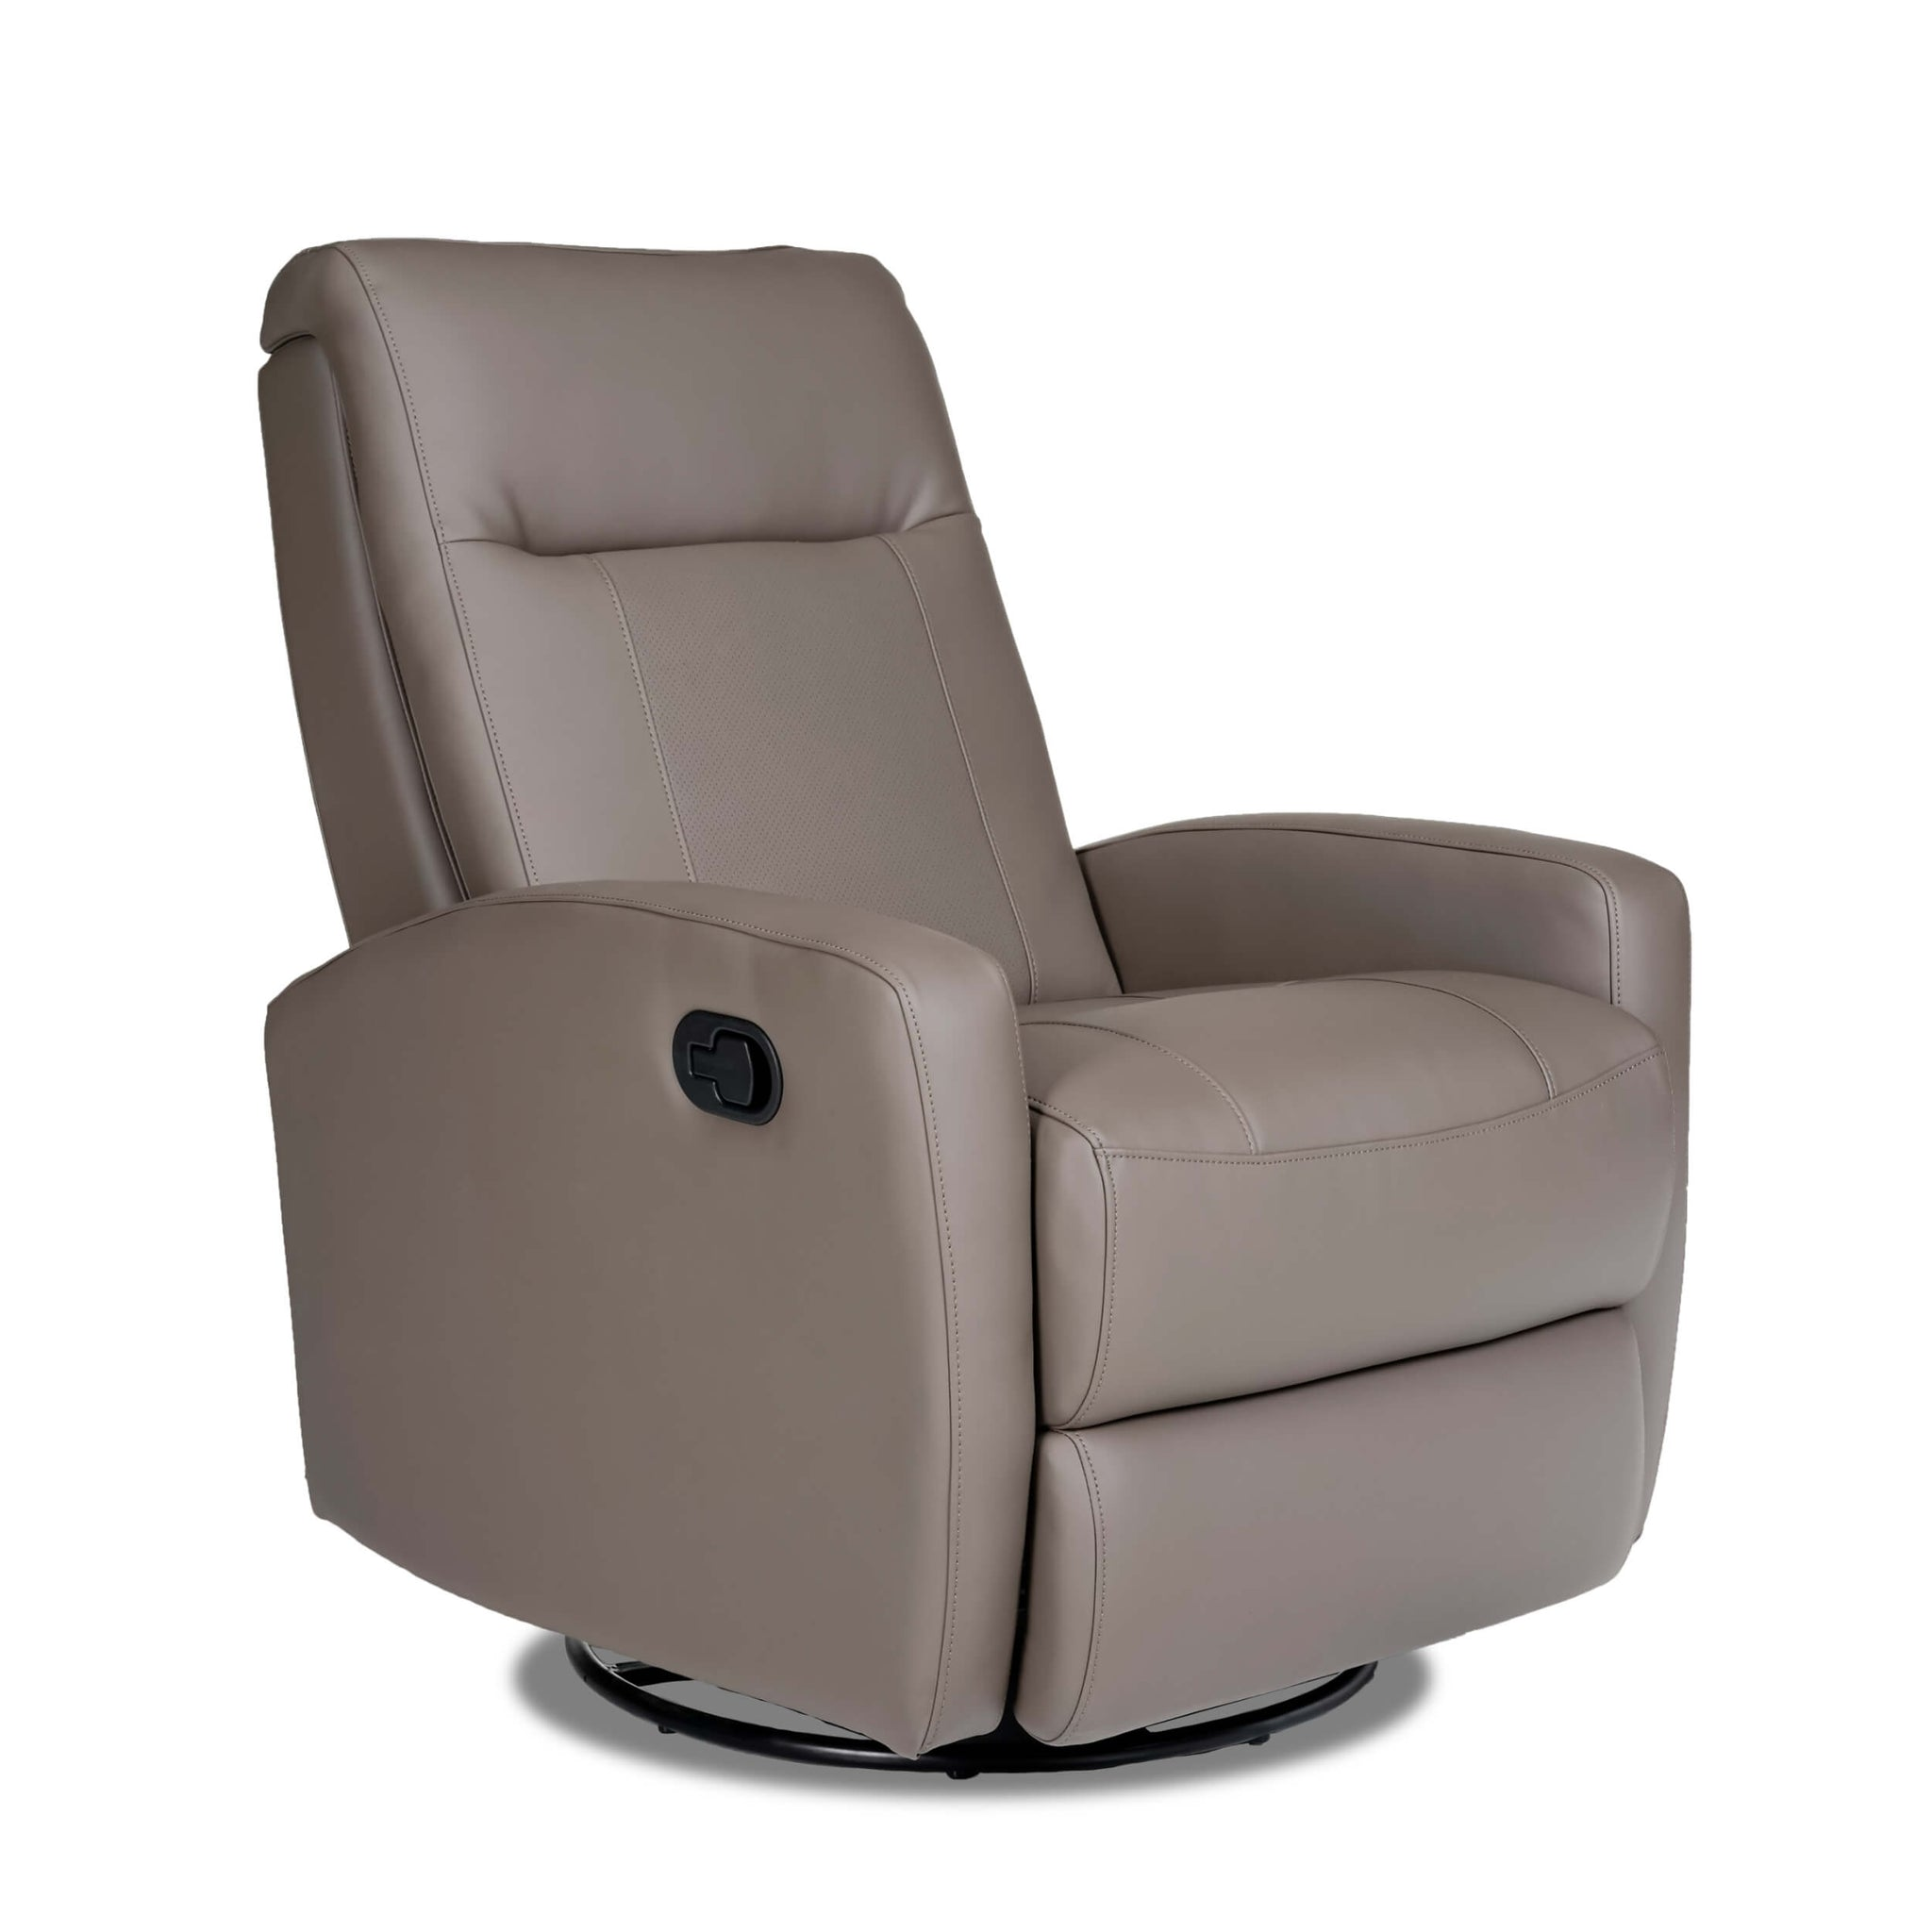 lift tiny buy home living ideas design recliners chair used modern a for recliner room maroon small furniture e apartment interior apartments